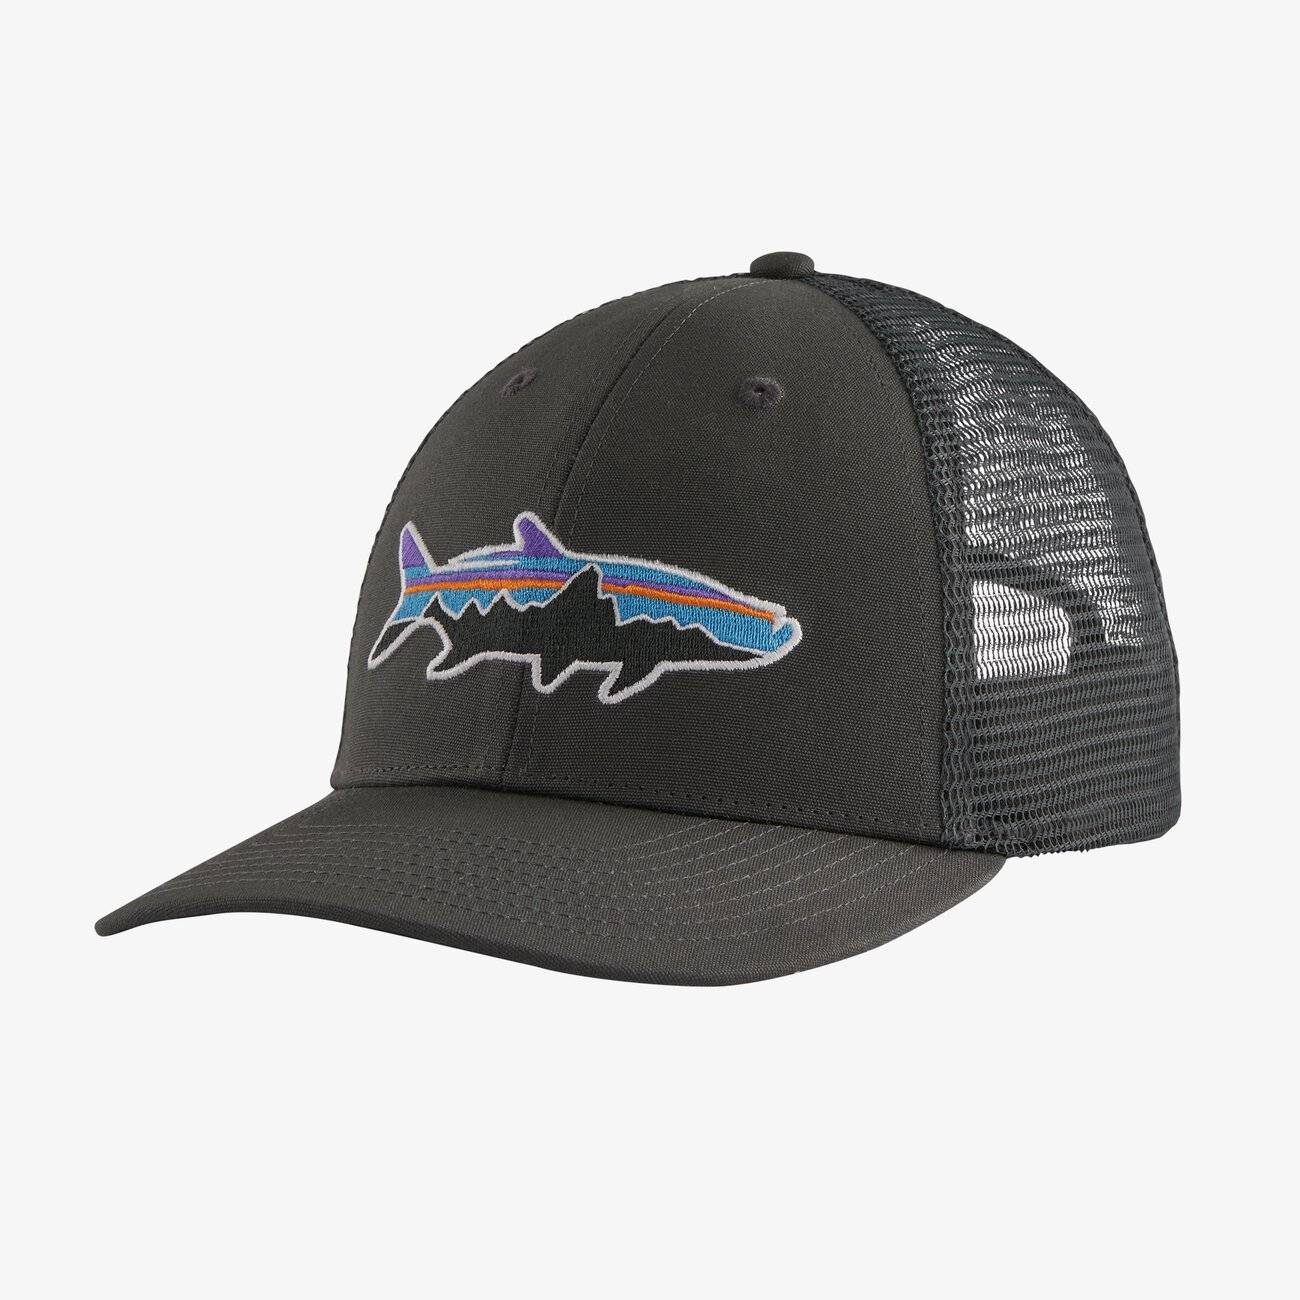 A Pangaia baseball cap made with recycled fishing nets